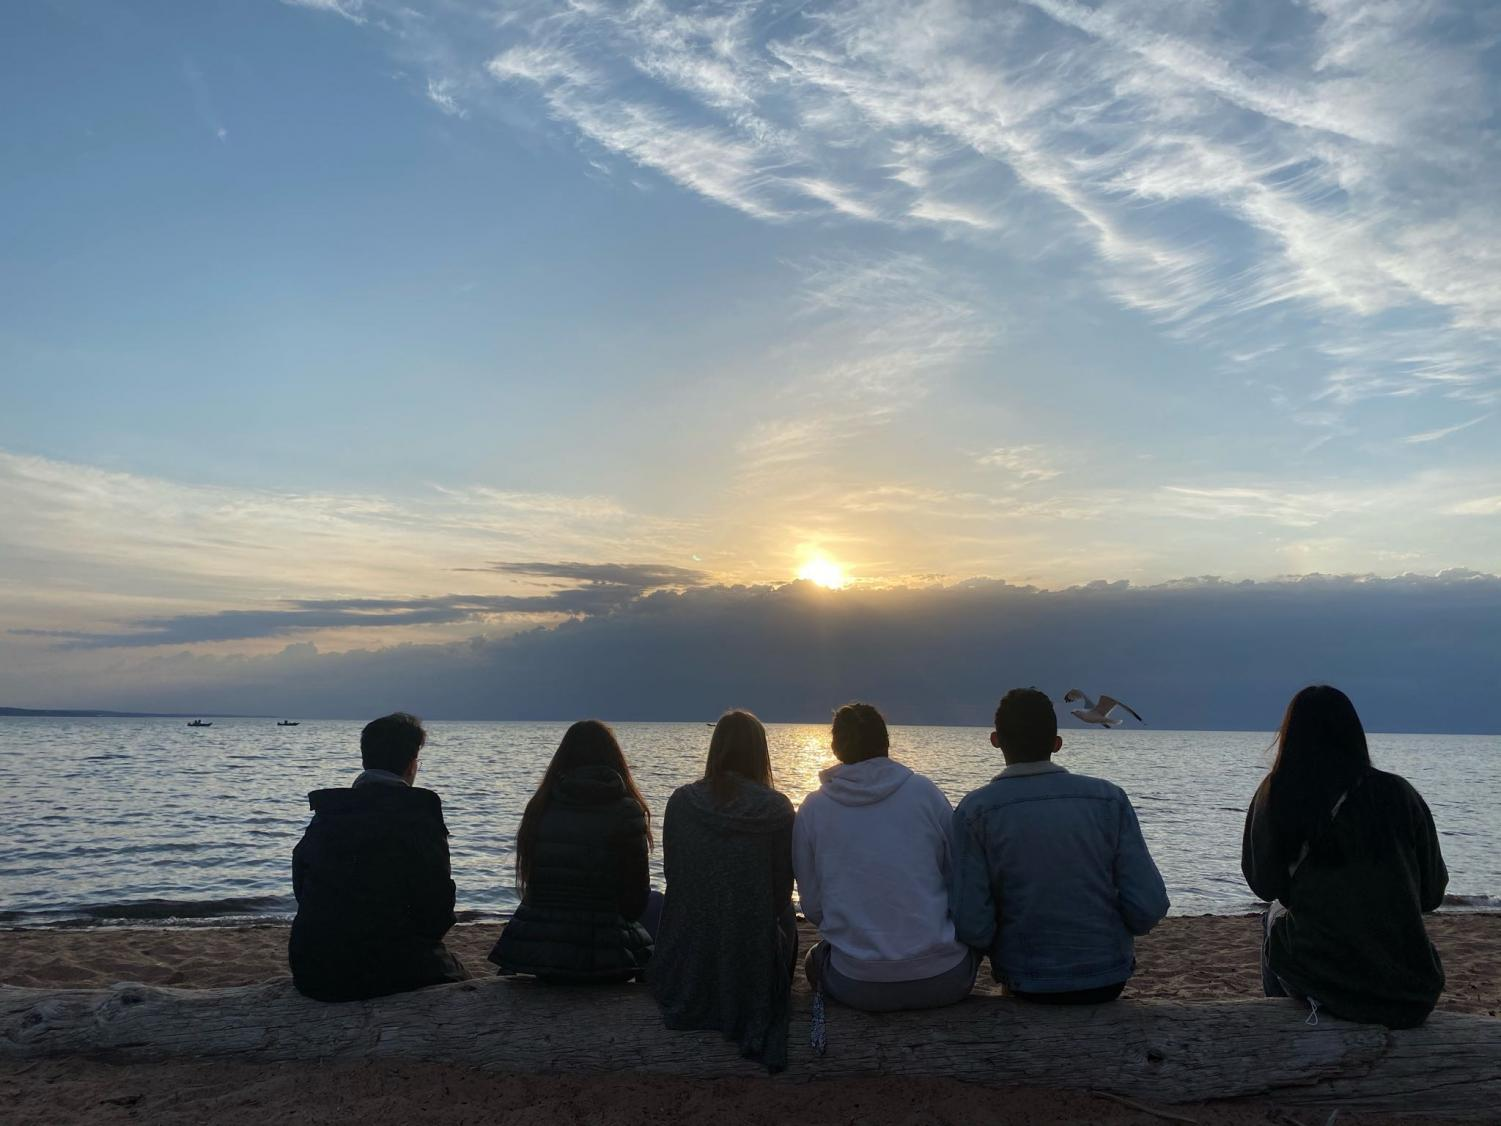 The students from the dorm in Duluth, with sun, beach, peaceful water and a seagull